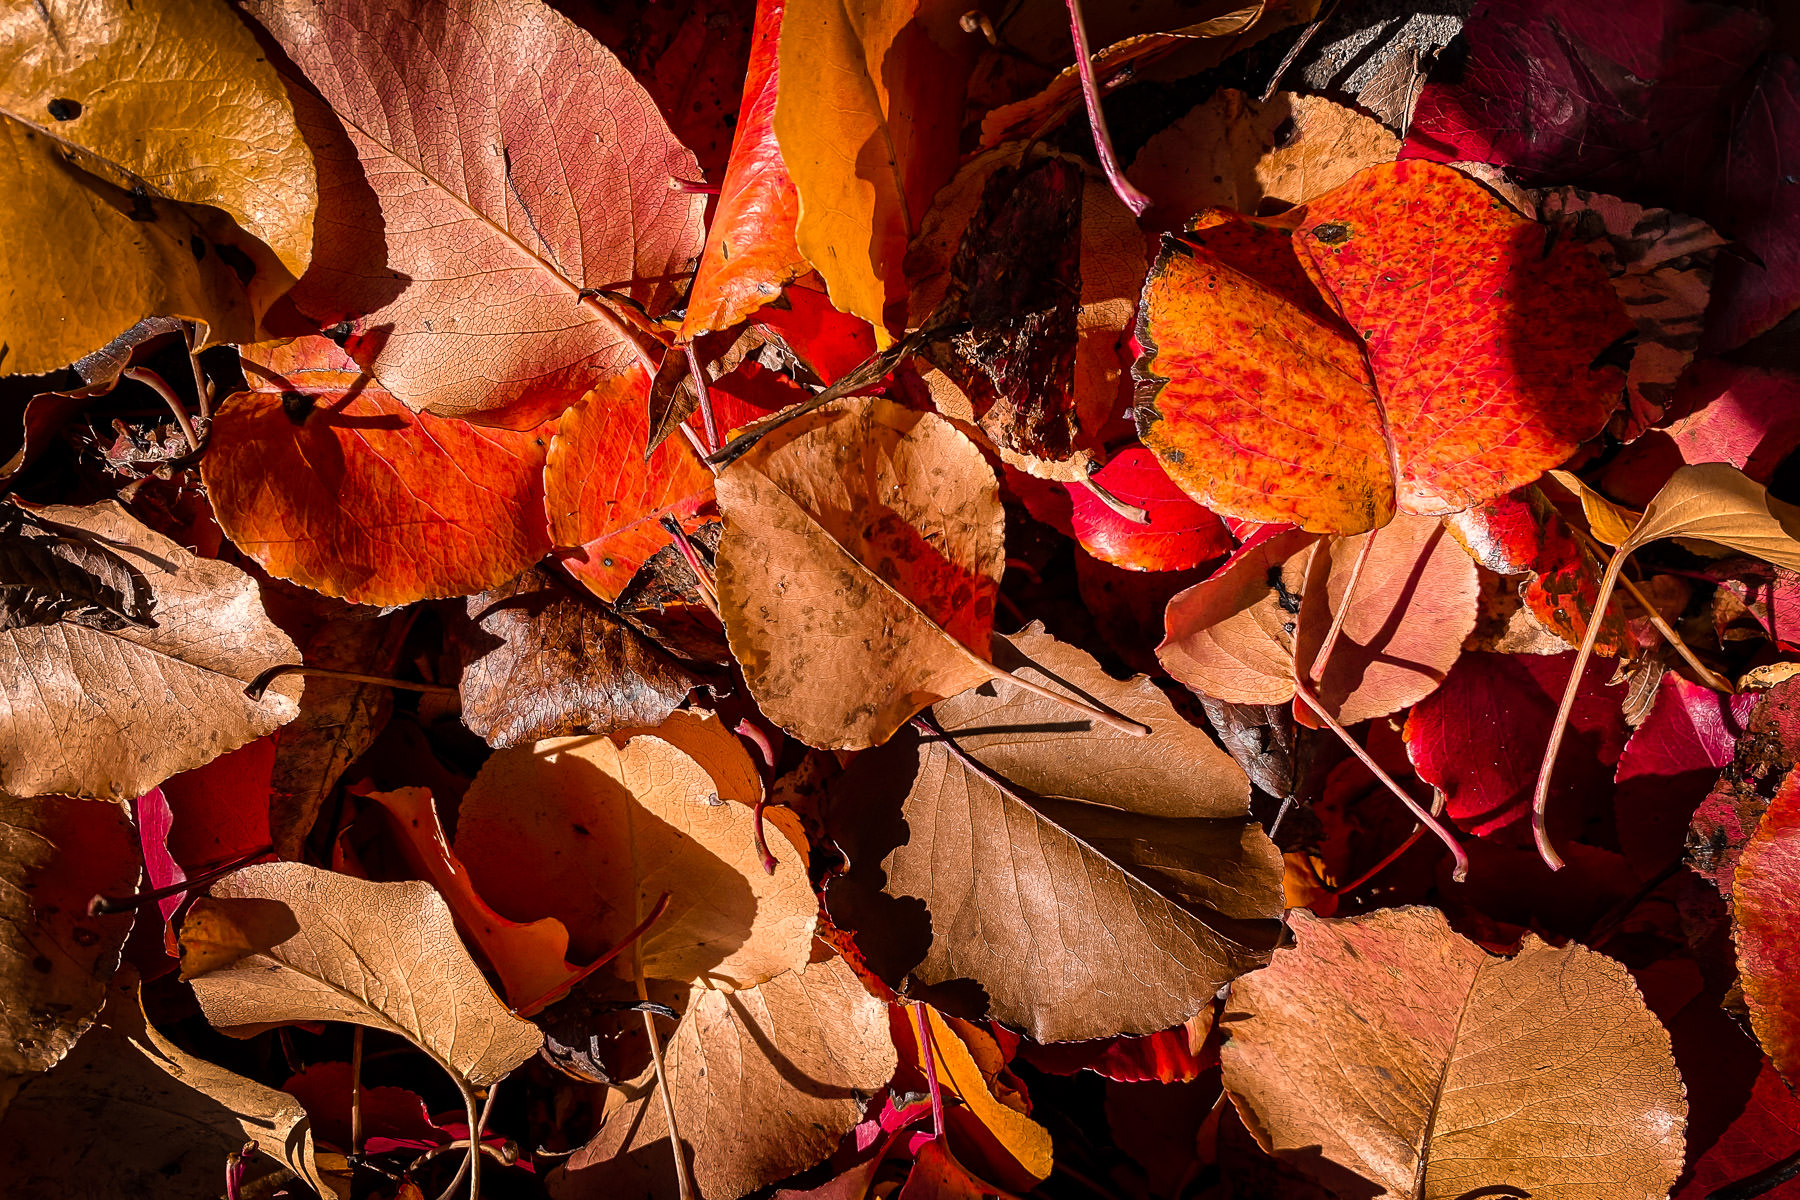 Fallen autumn leaves spotted in McKinney, Texas.